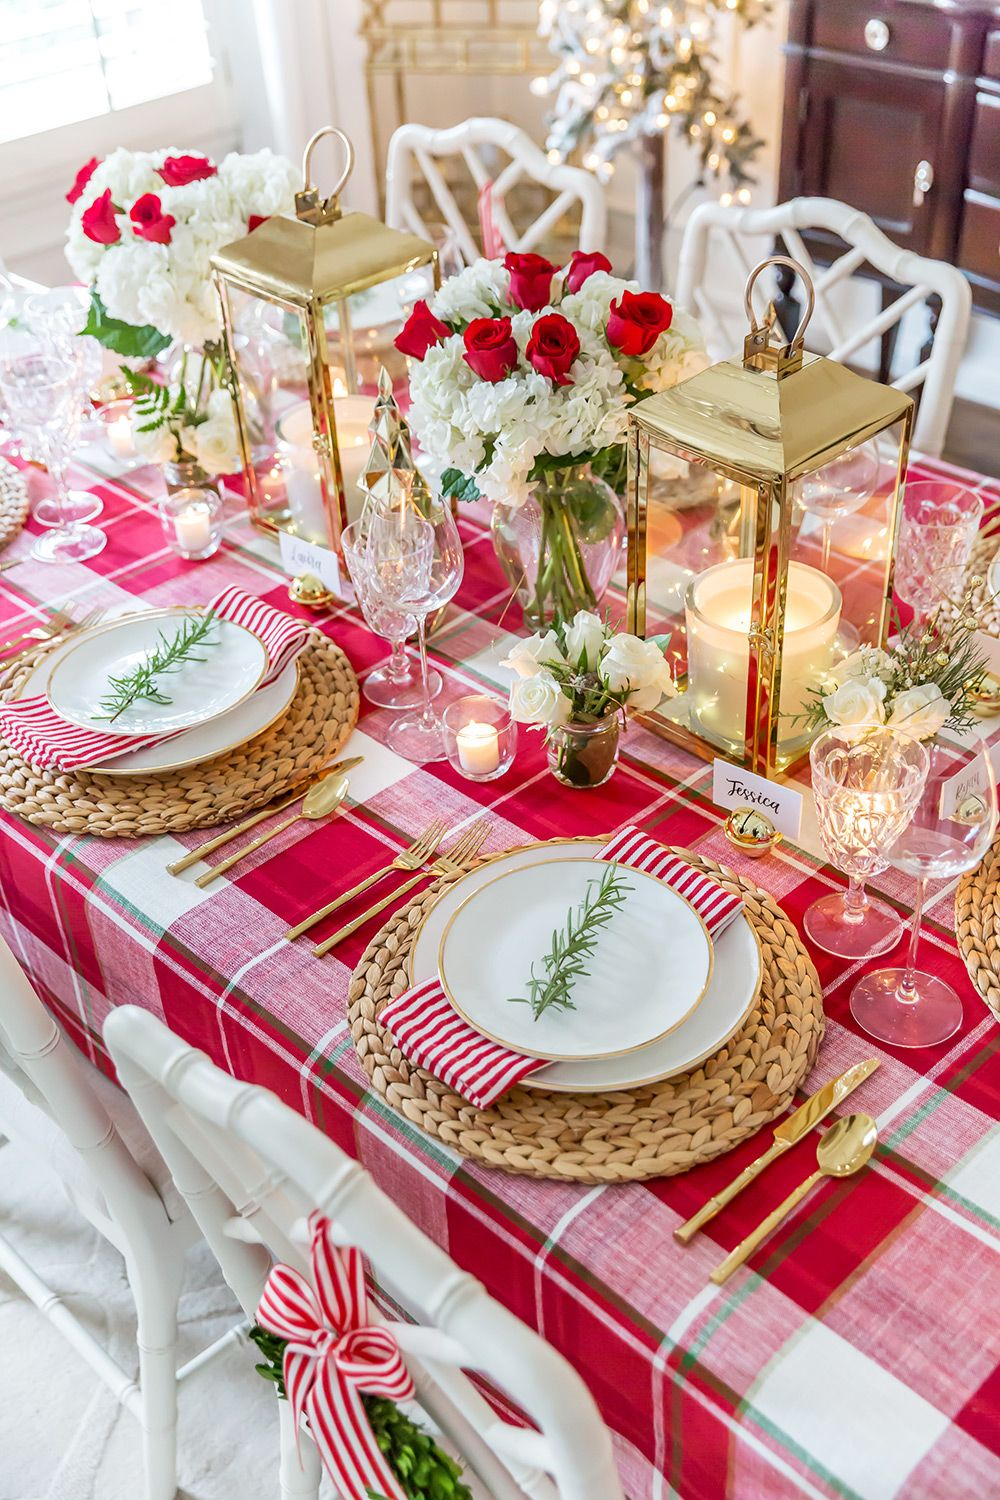 Christmas Table Decorations Red And Gold Christmas Dining Table Christmas Table Decorations Christmas Table